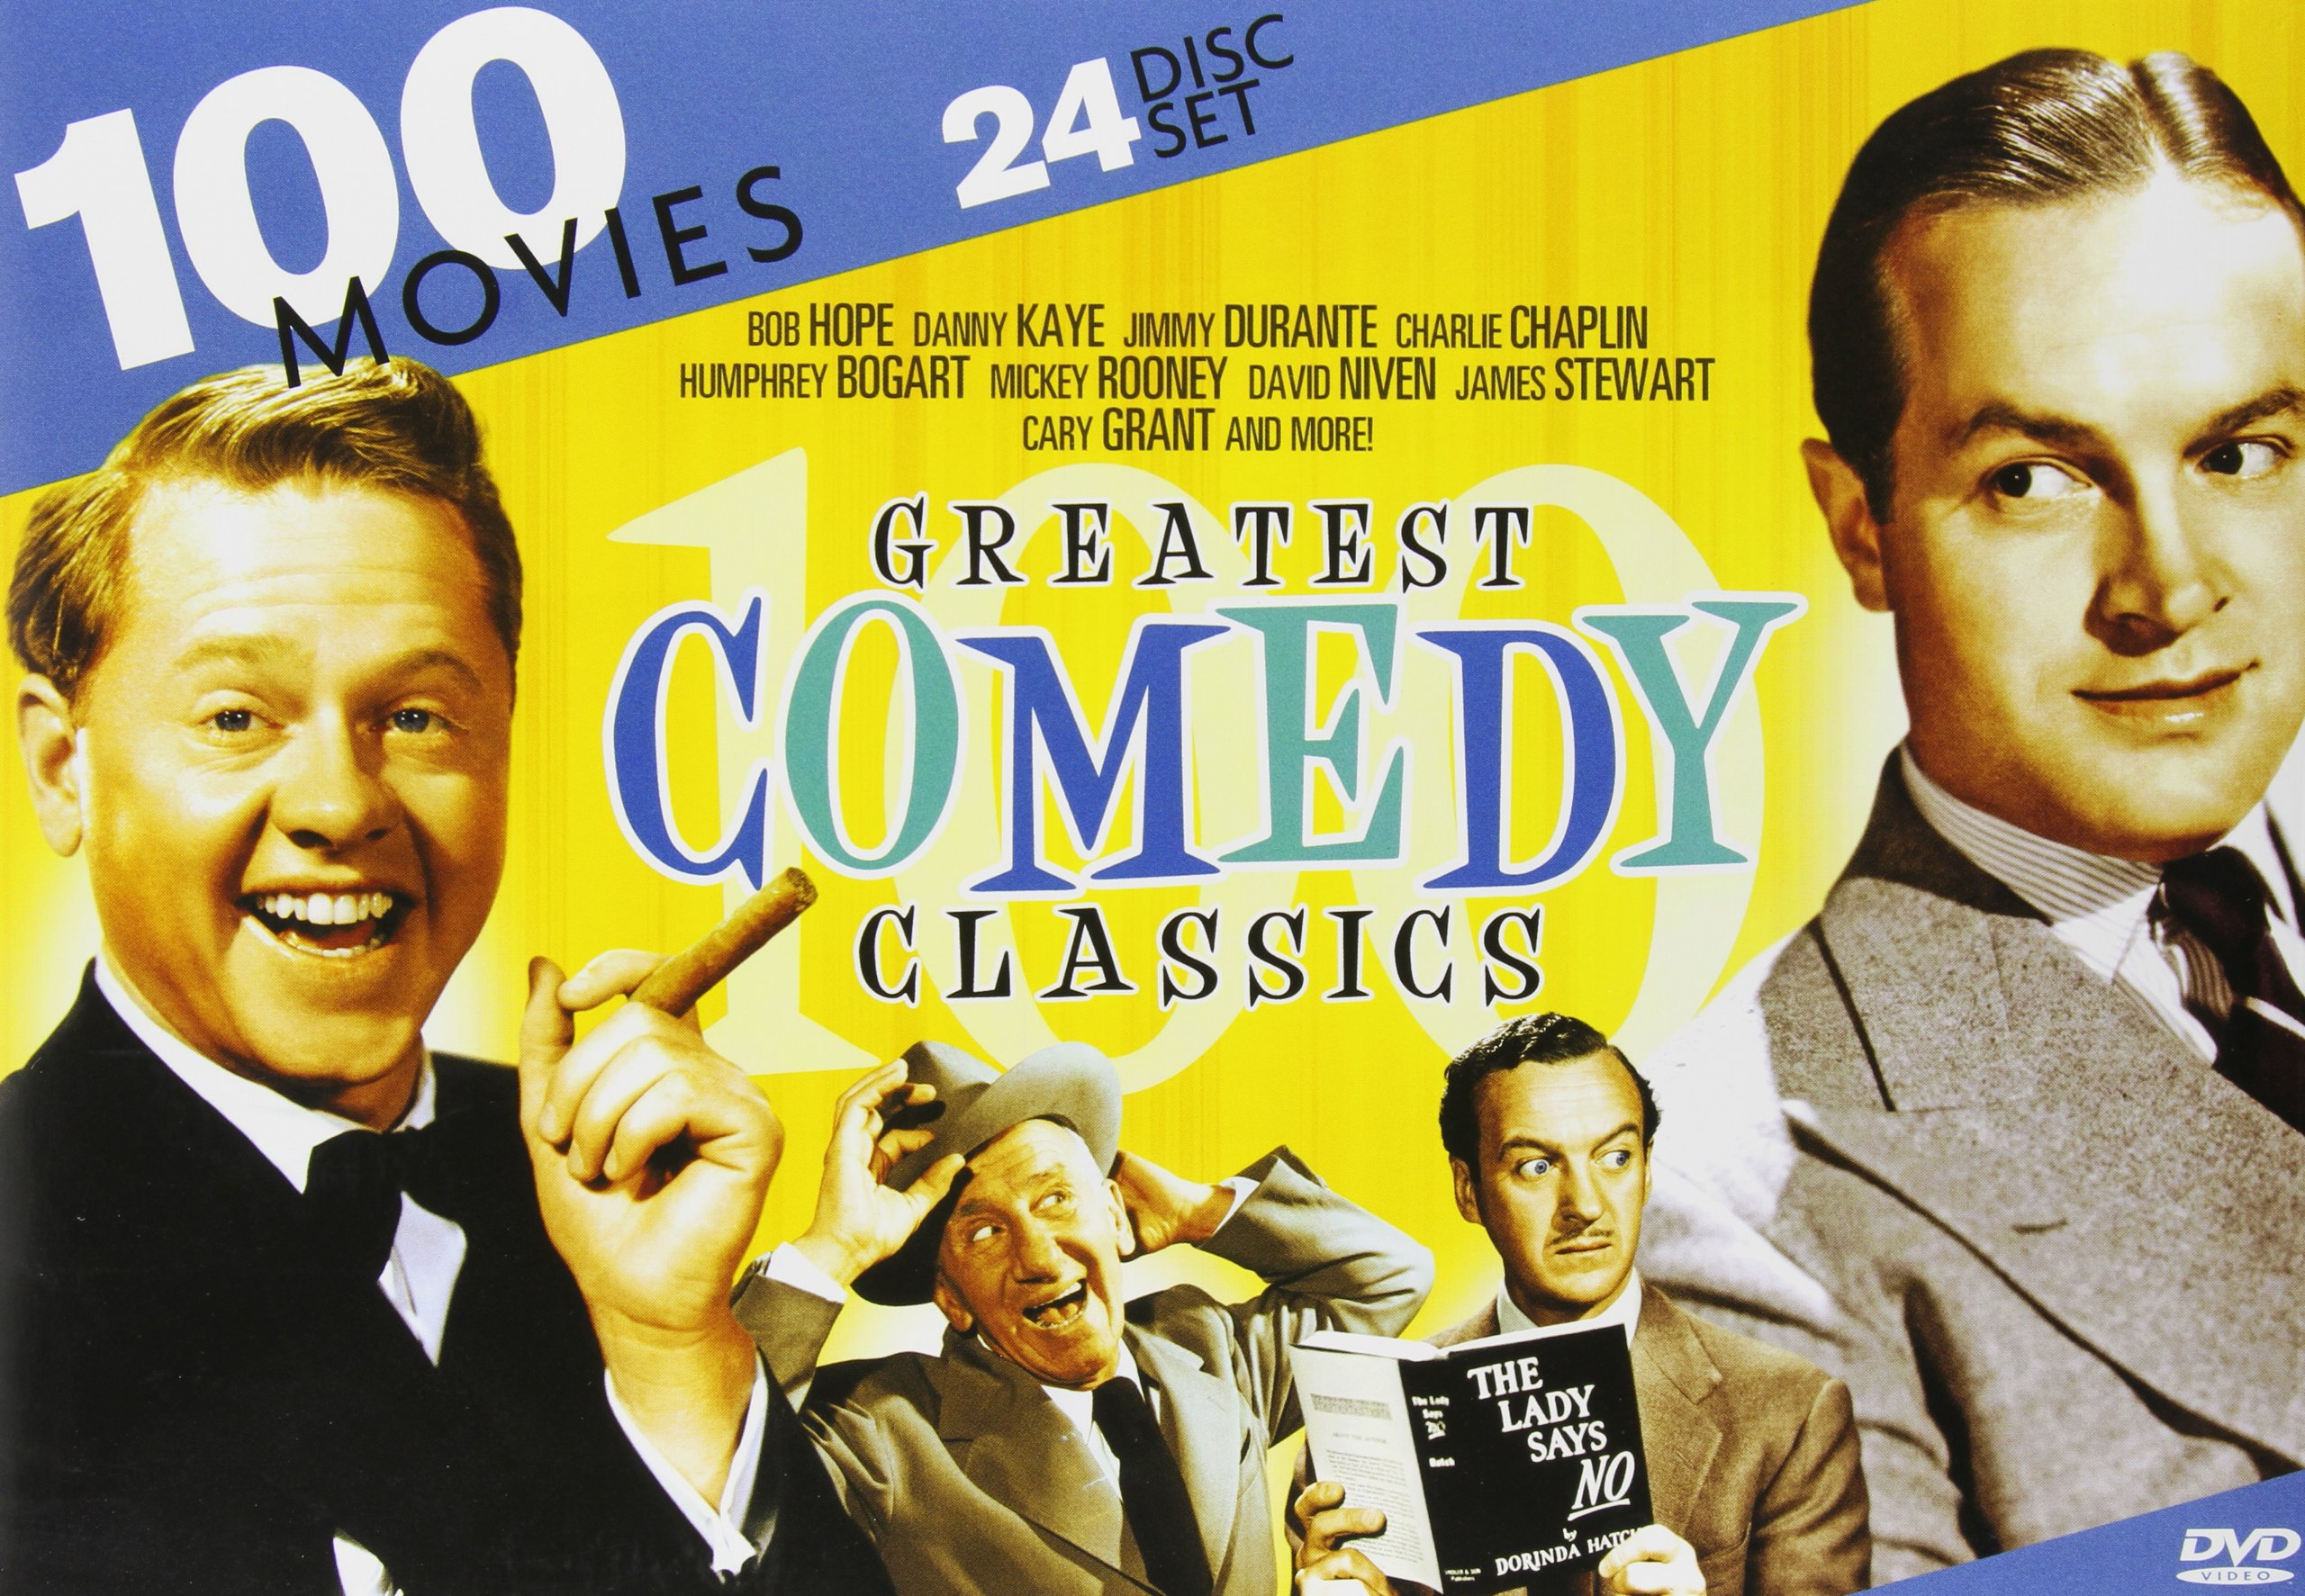 100 Greatest Comedy Classics - Comedy Kings + Hollywood Comedy